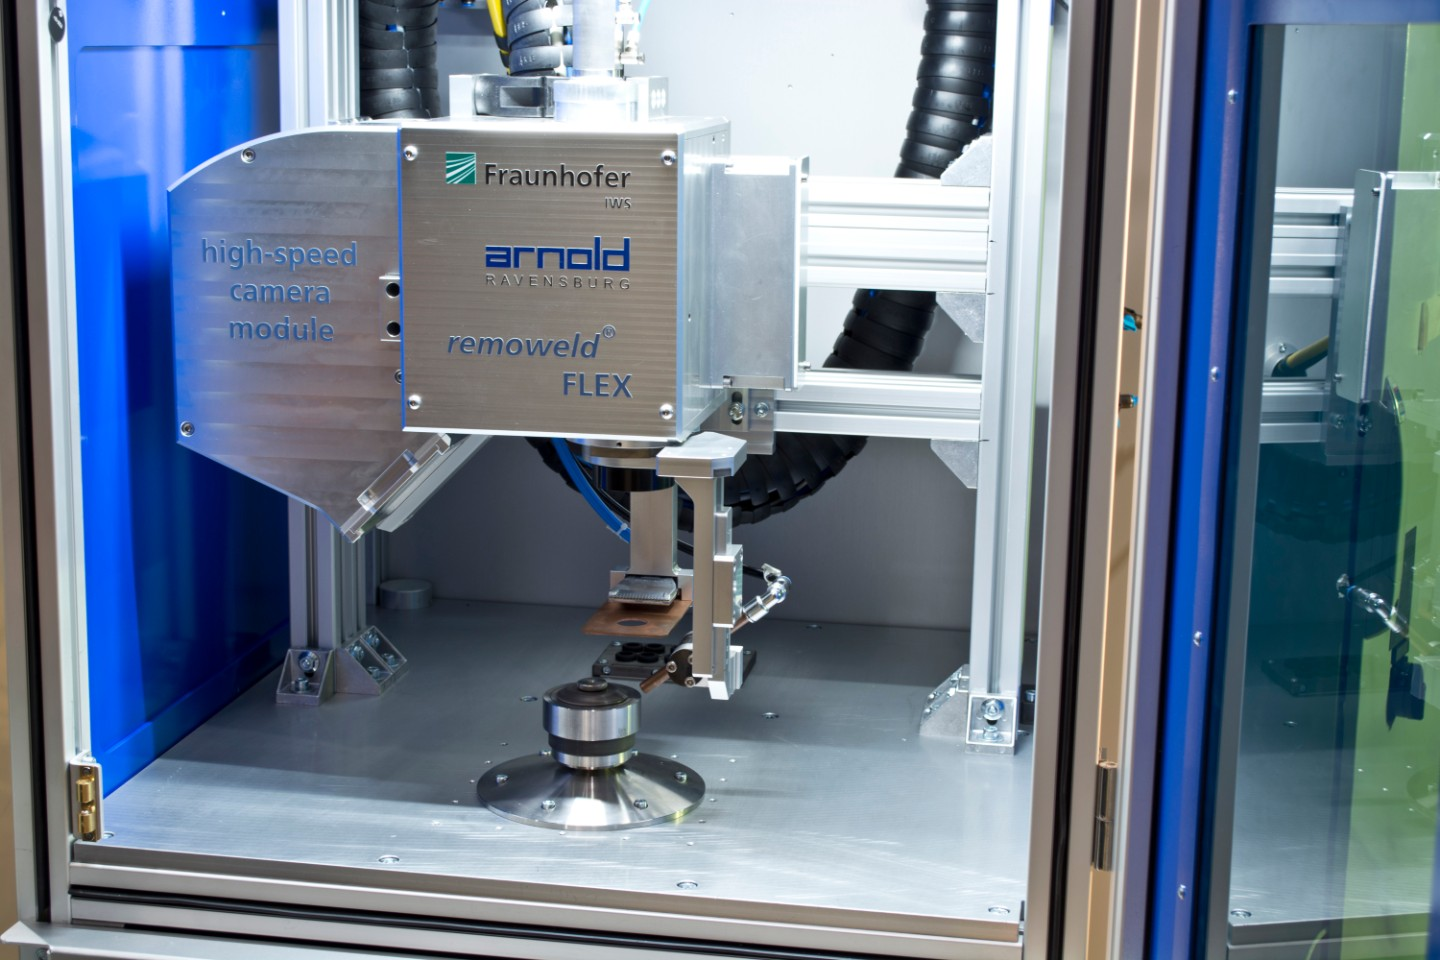 "The Fraunhofer IWS technology known as ""remoweld®FLEX"" is suitable for particularly demanding processes, especially for components to be sealed media-tight against water and other undesirable environmental influences."